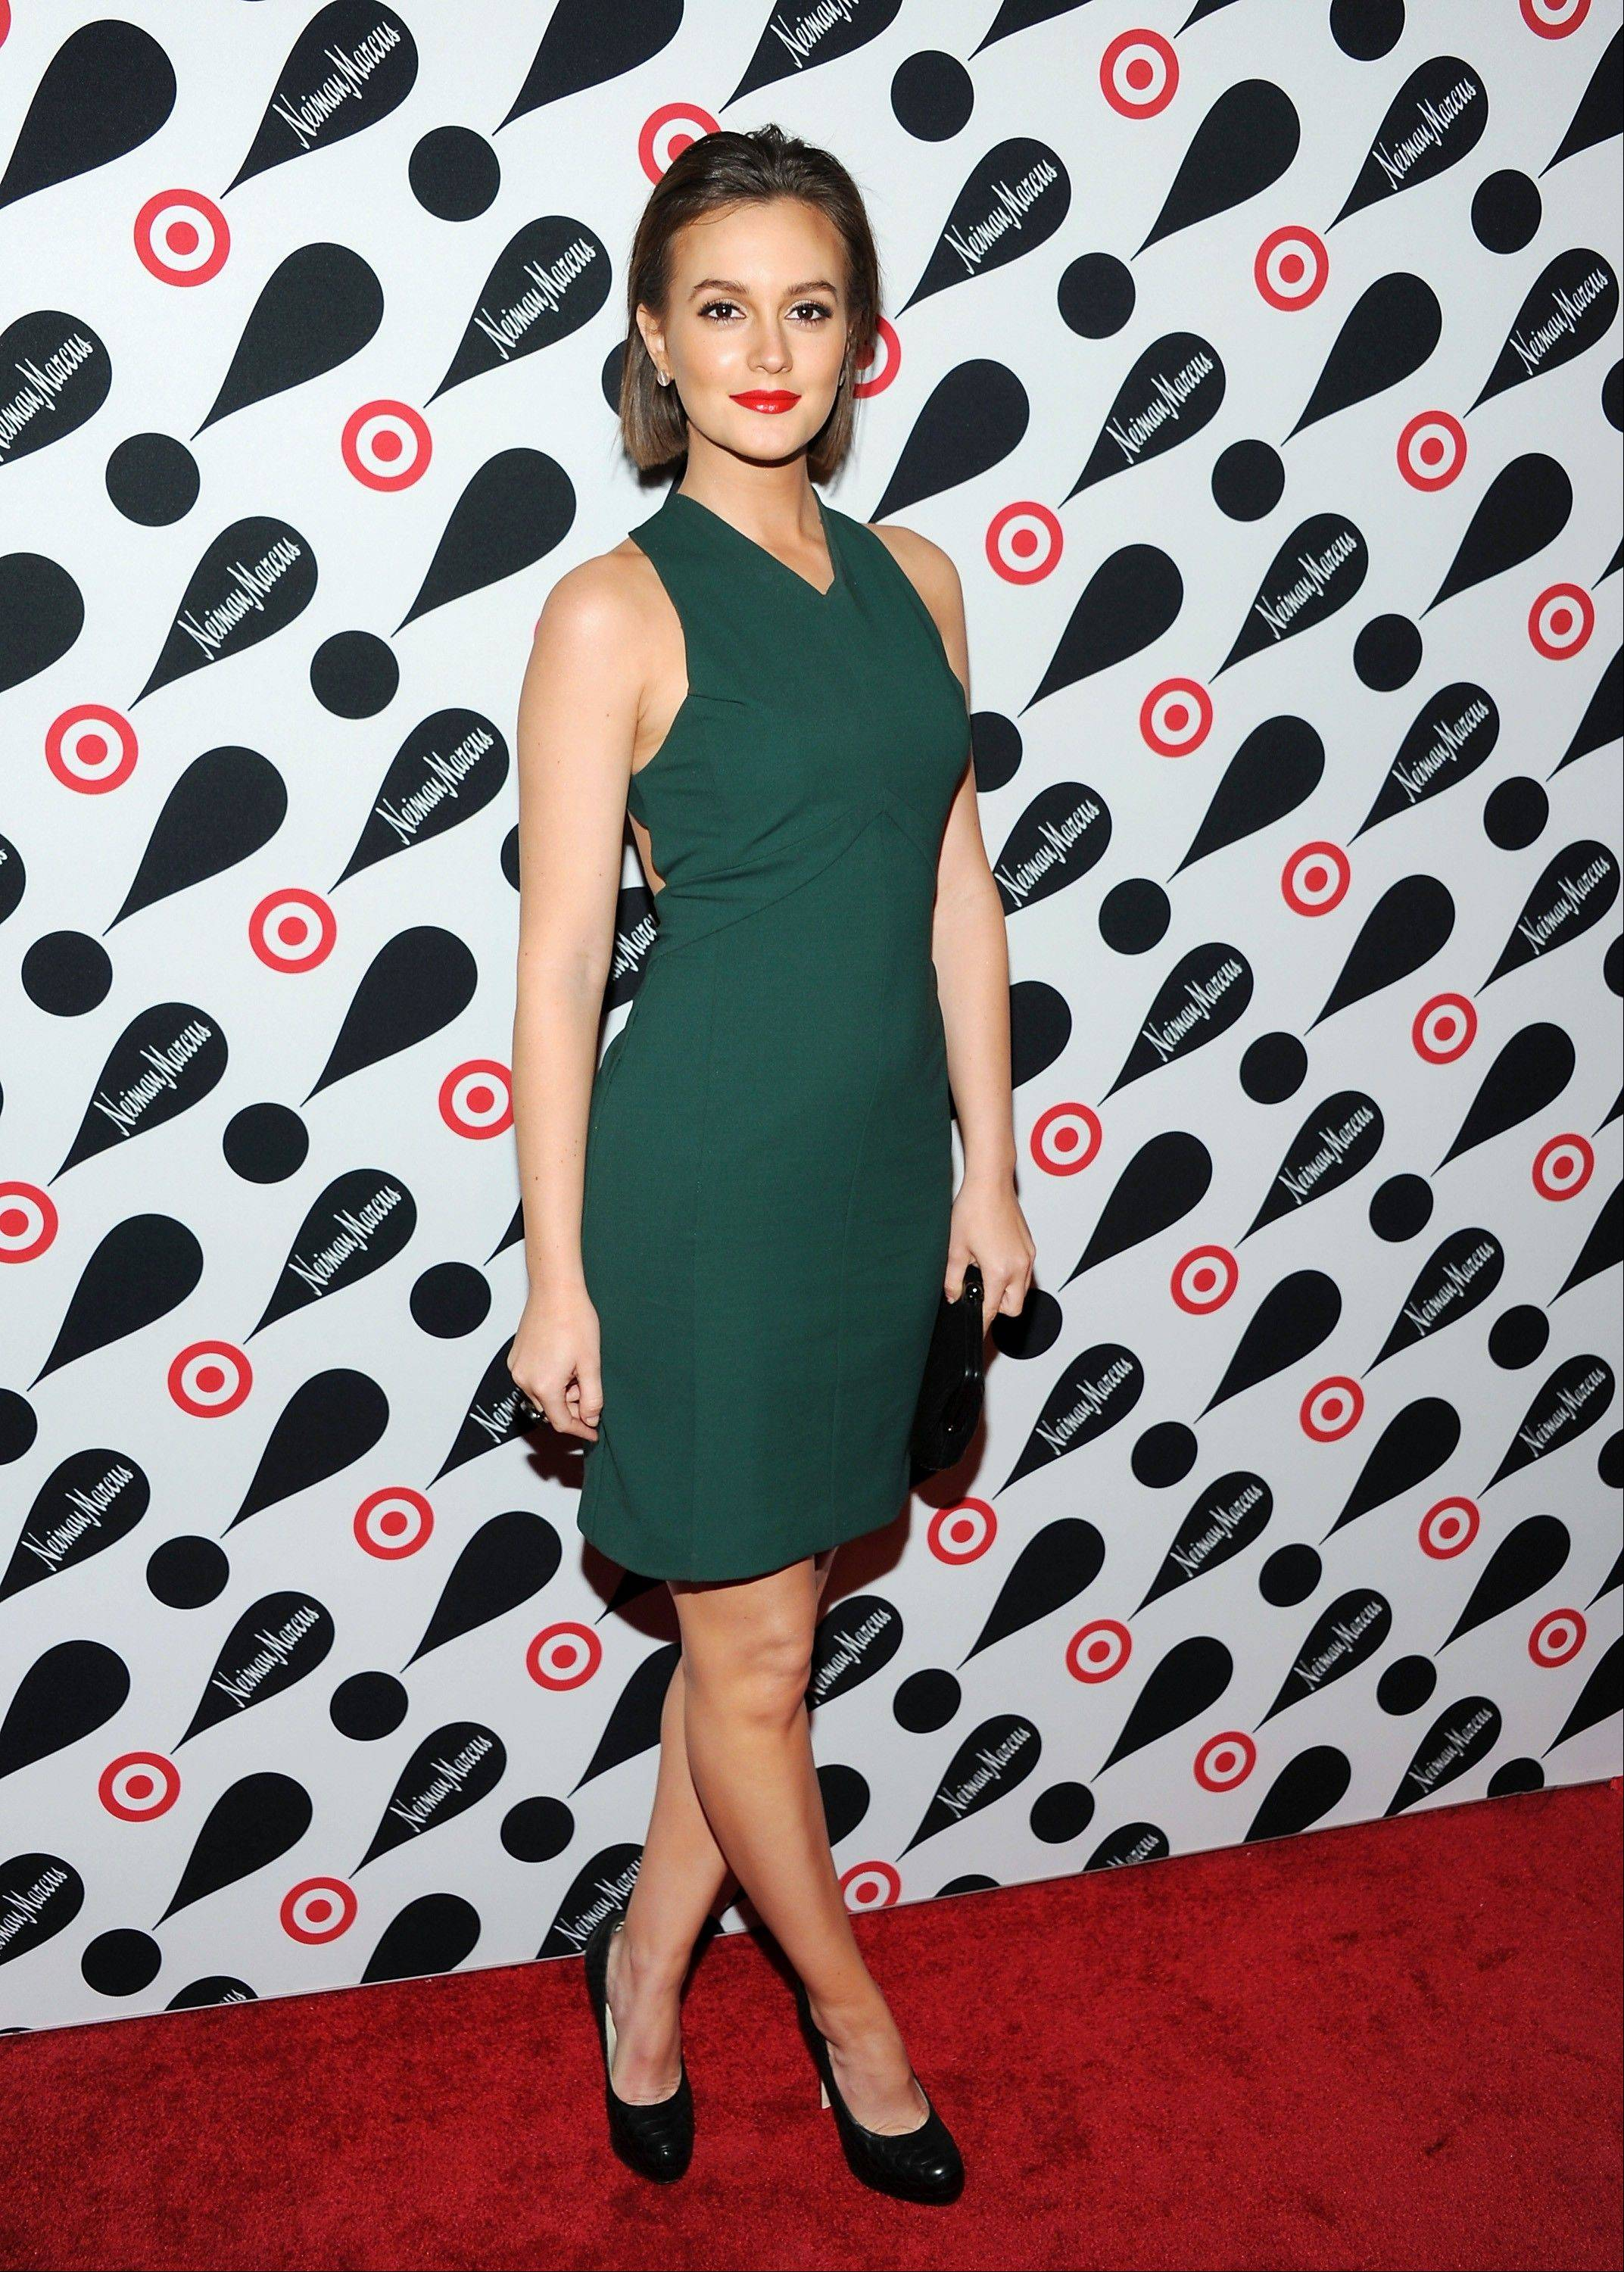 Actress Leighton Meester attends the Target and Neiman Marcus holiday collection launch in New York.